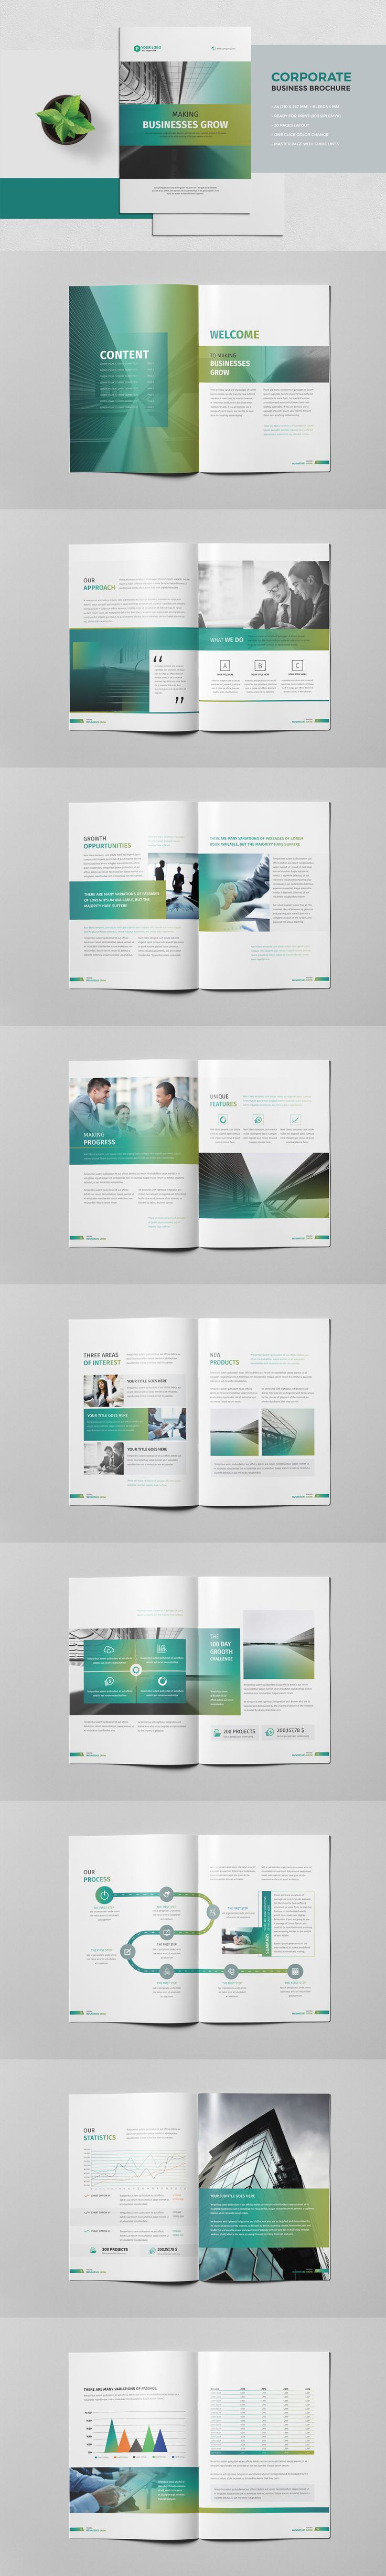 Corporate Business Brochure 20 Pages Template InDesign INDD